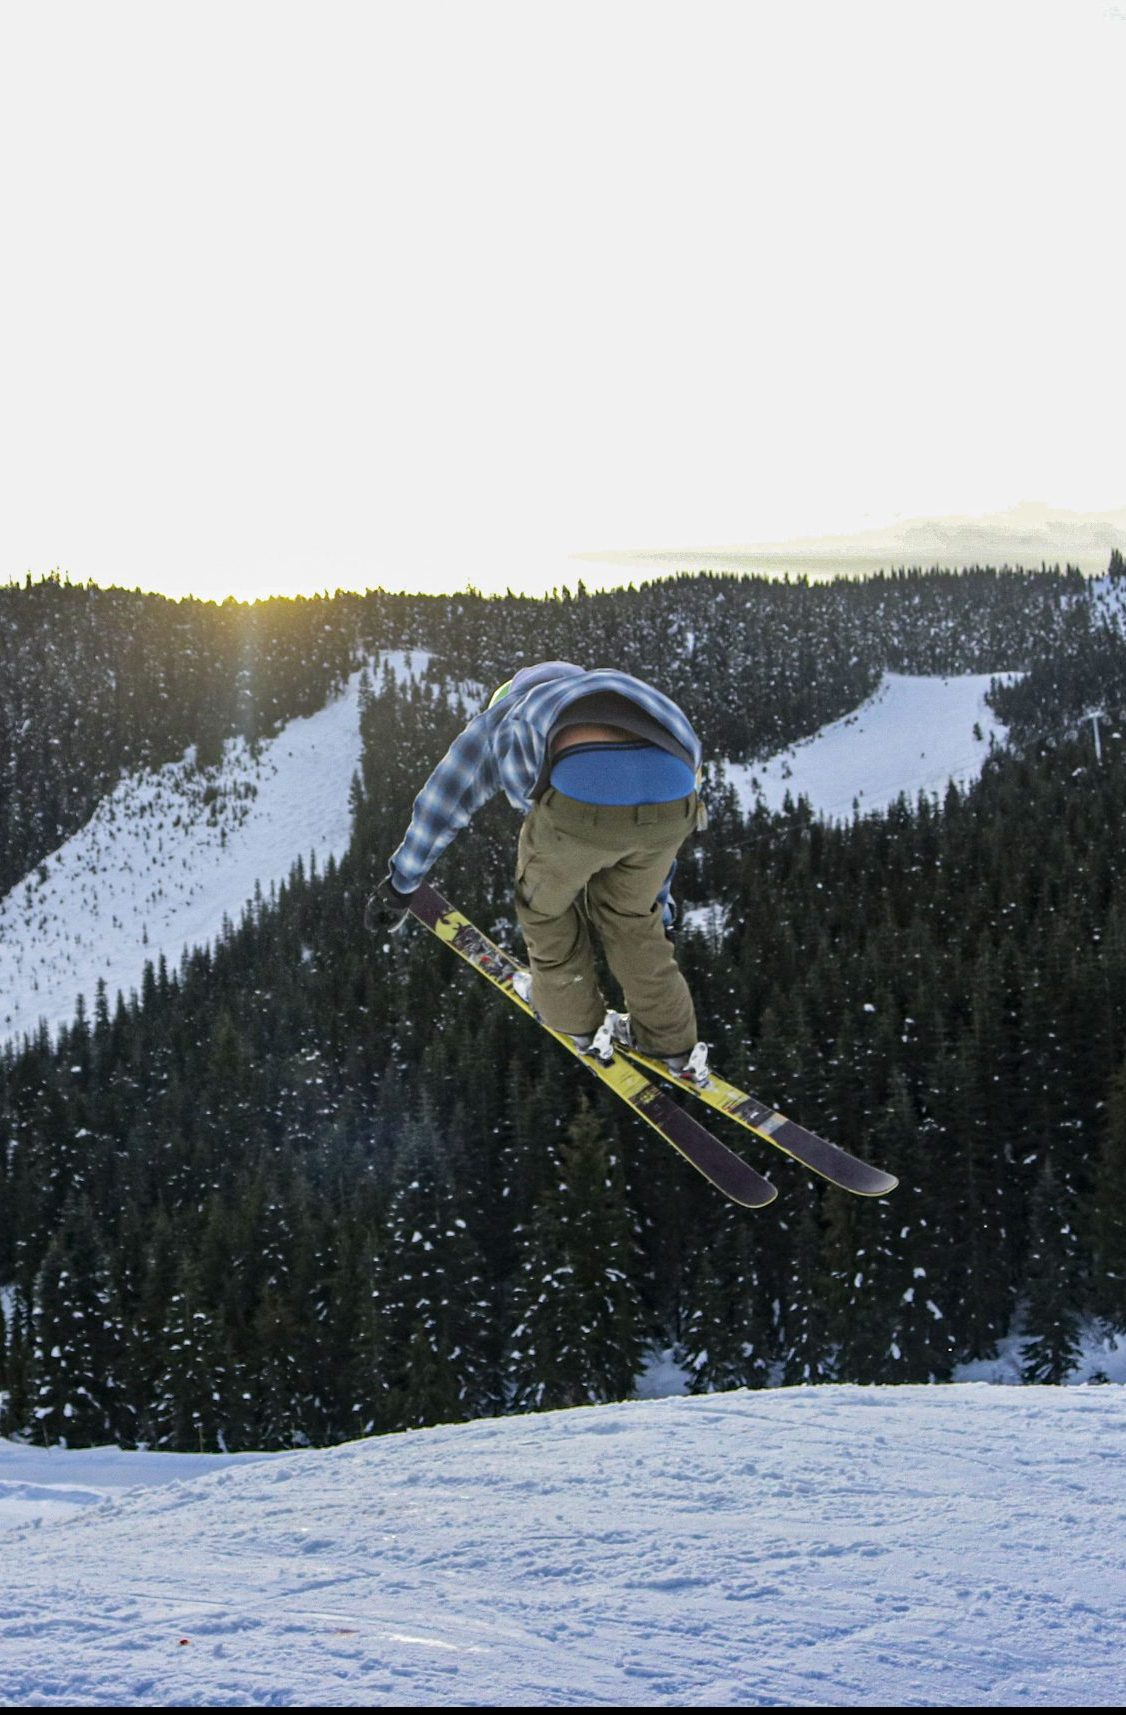 Skier going over a jump in one of the Sasquatch Mountain terrain parks